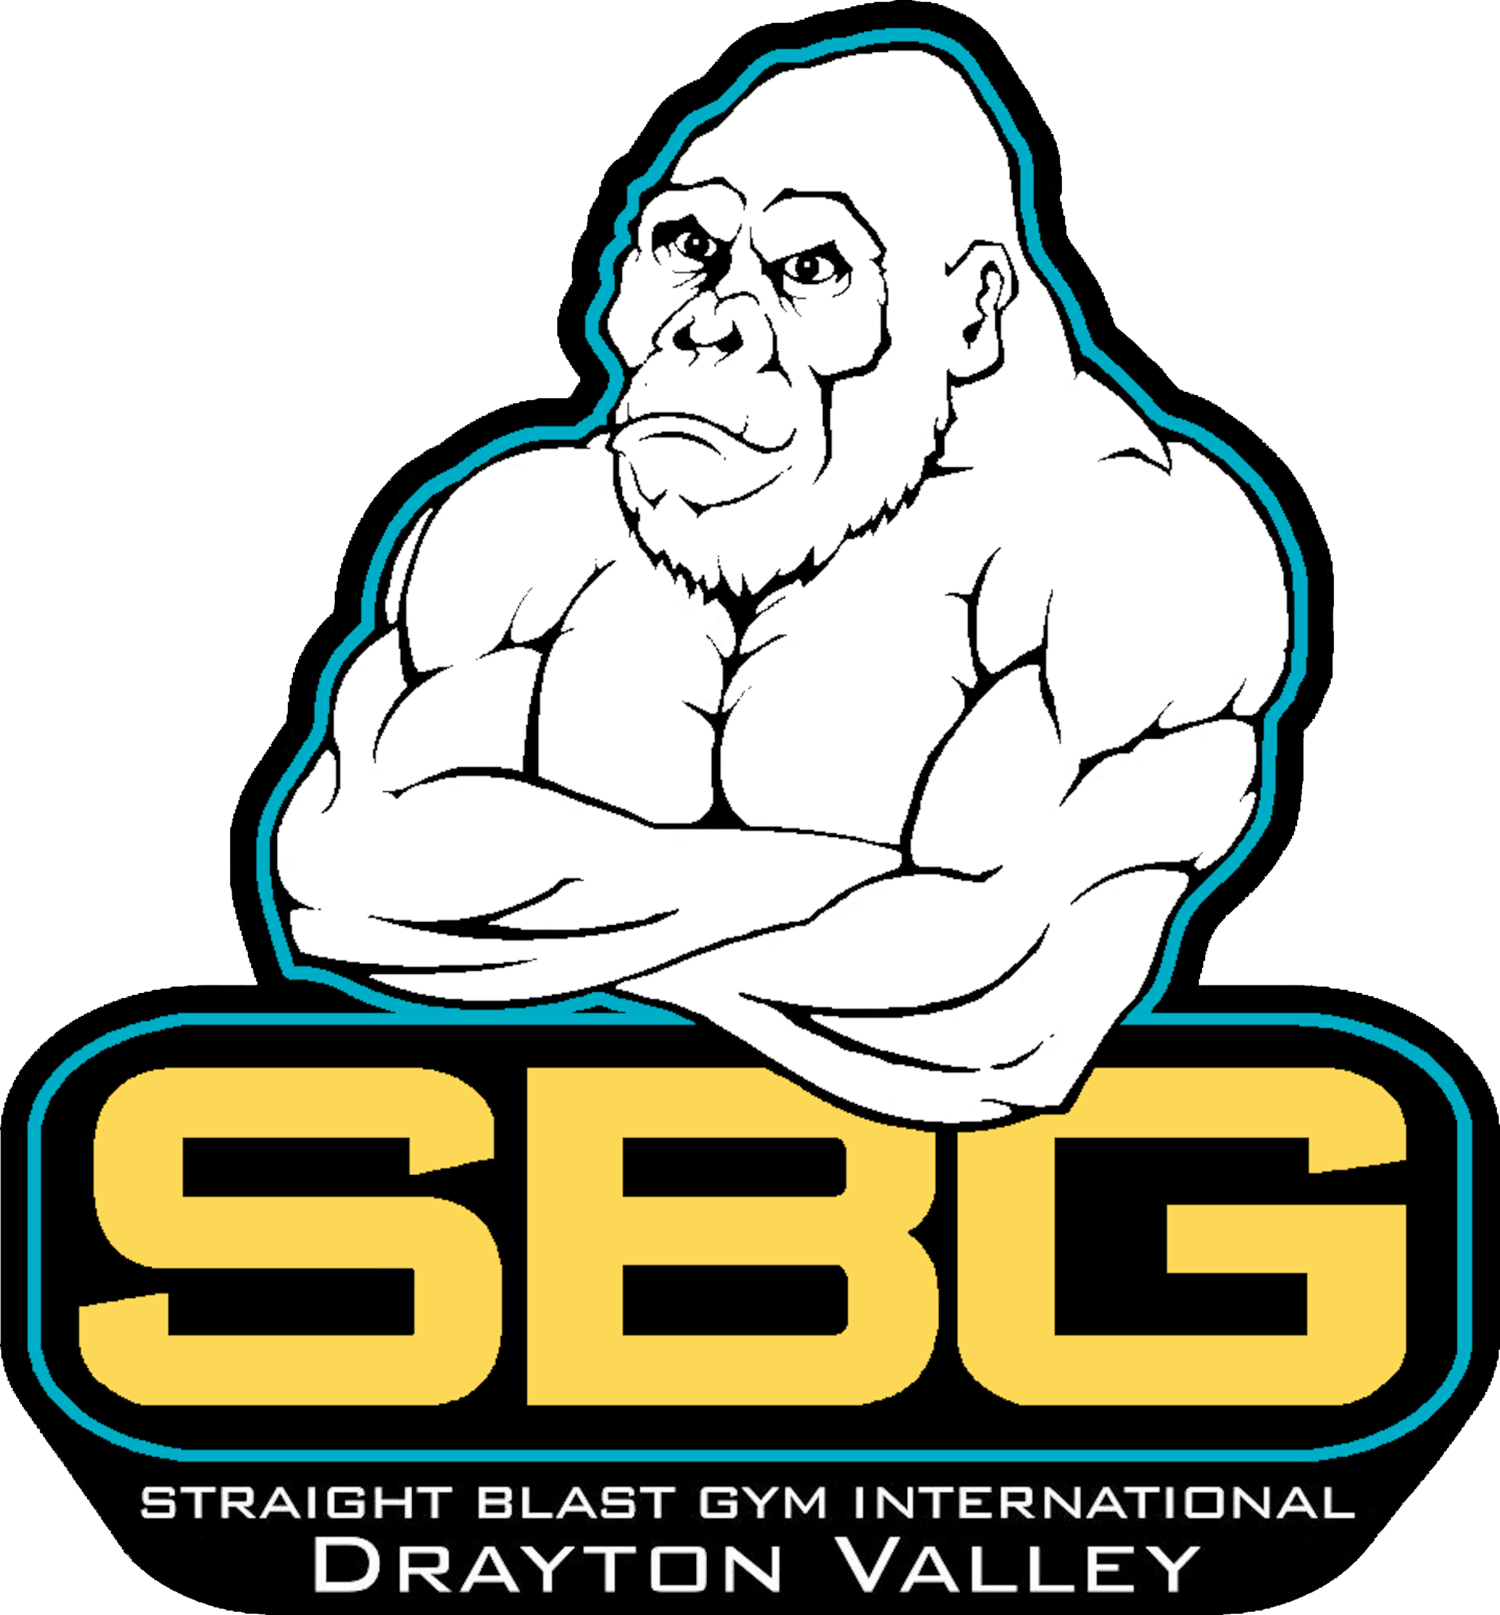 SBG Drayton Valley